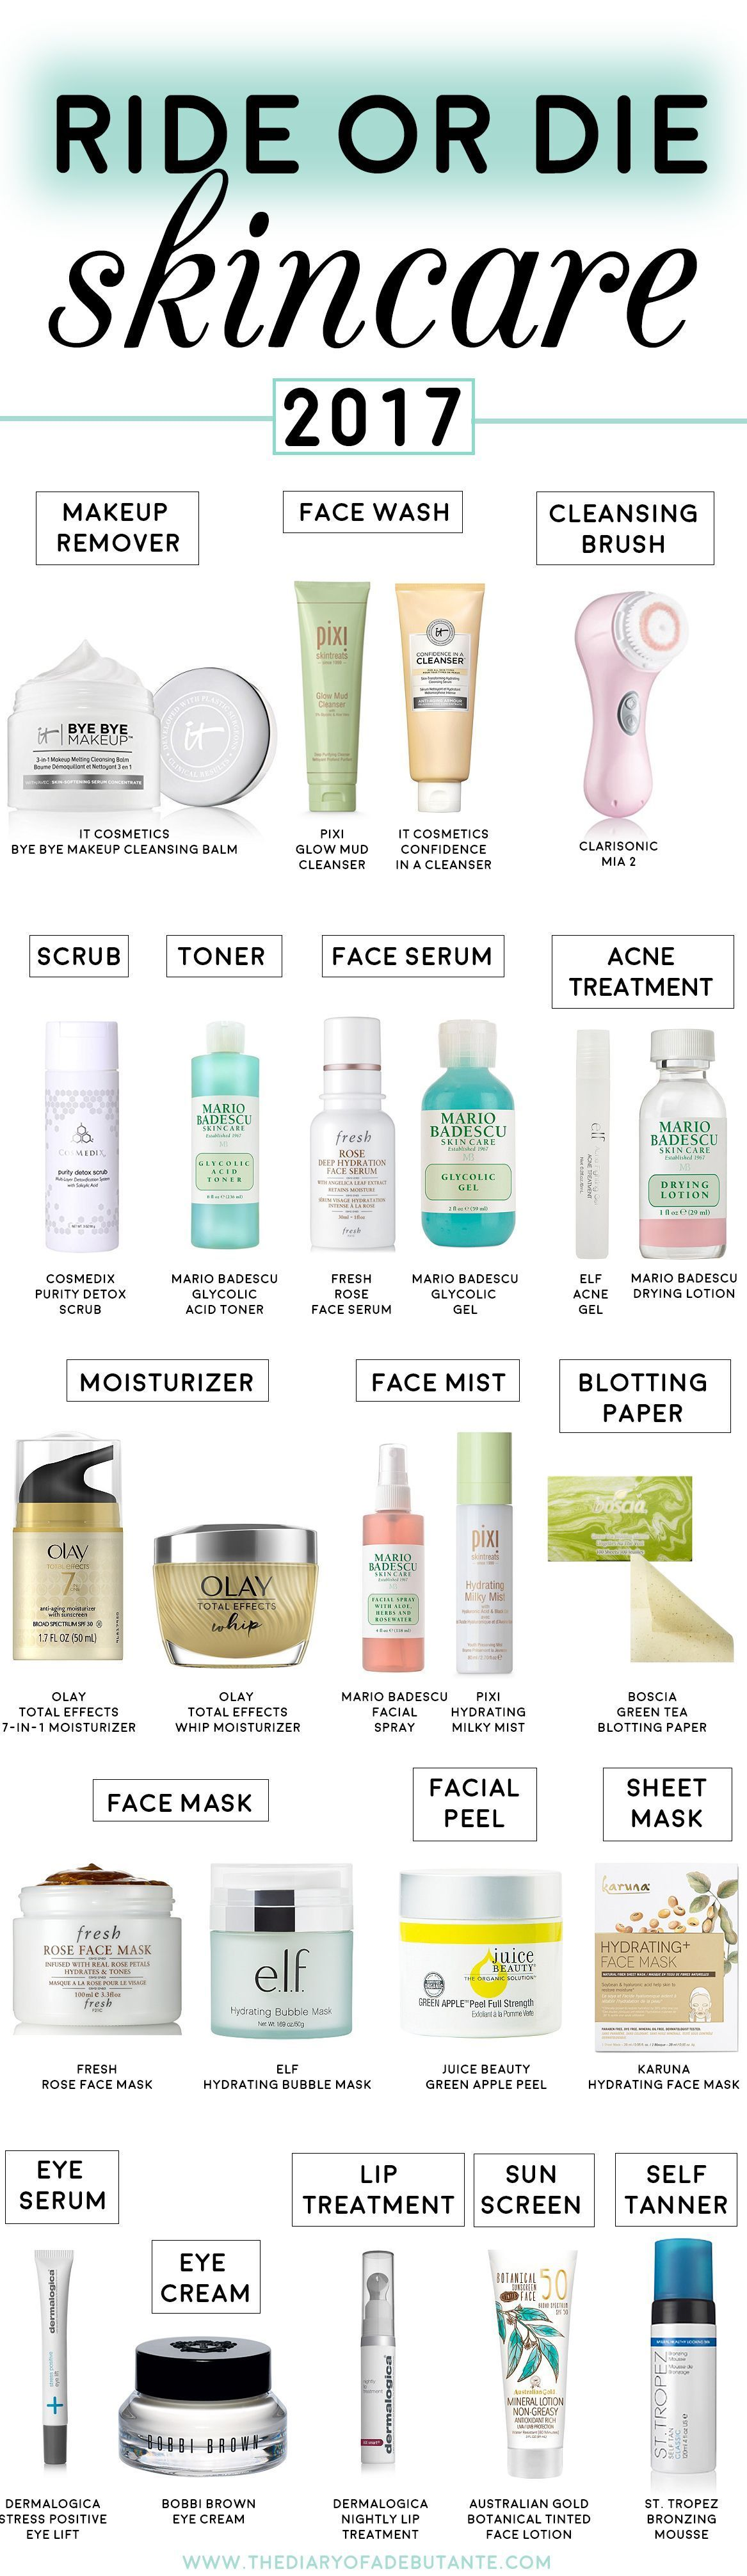 Best Skin And Facial Products For Oily Combination Skin Best Skincare Products For Acne Prone Skin Ride Anti Aging Skin Products Skin Care Aging Skin Care